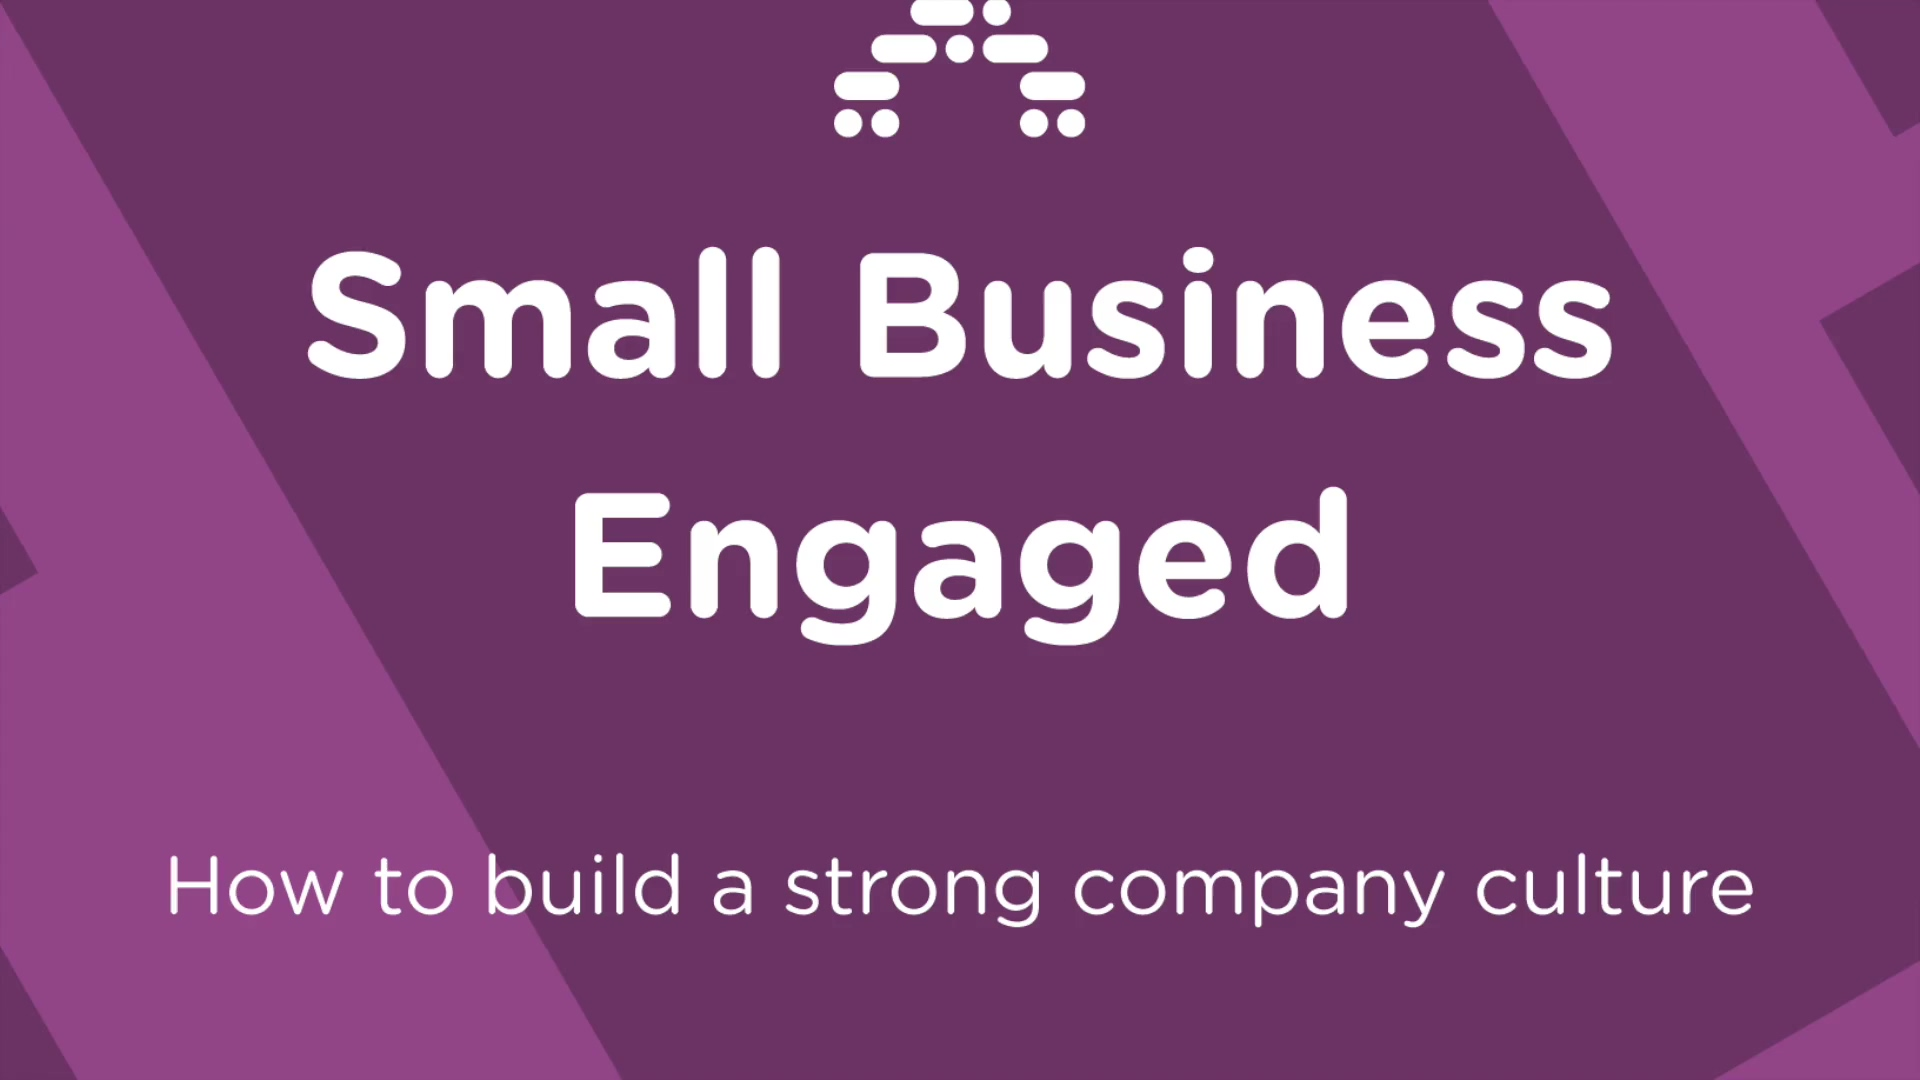 Small Business Engaged UK - Episode 2 - How to Build a Strong Company Culture